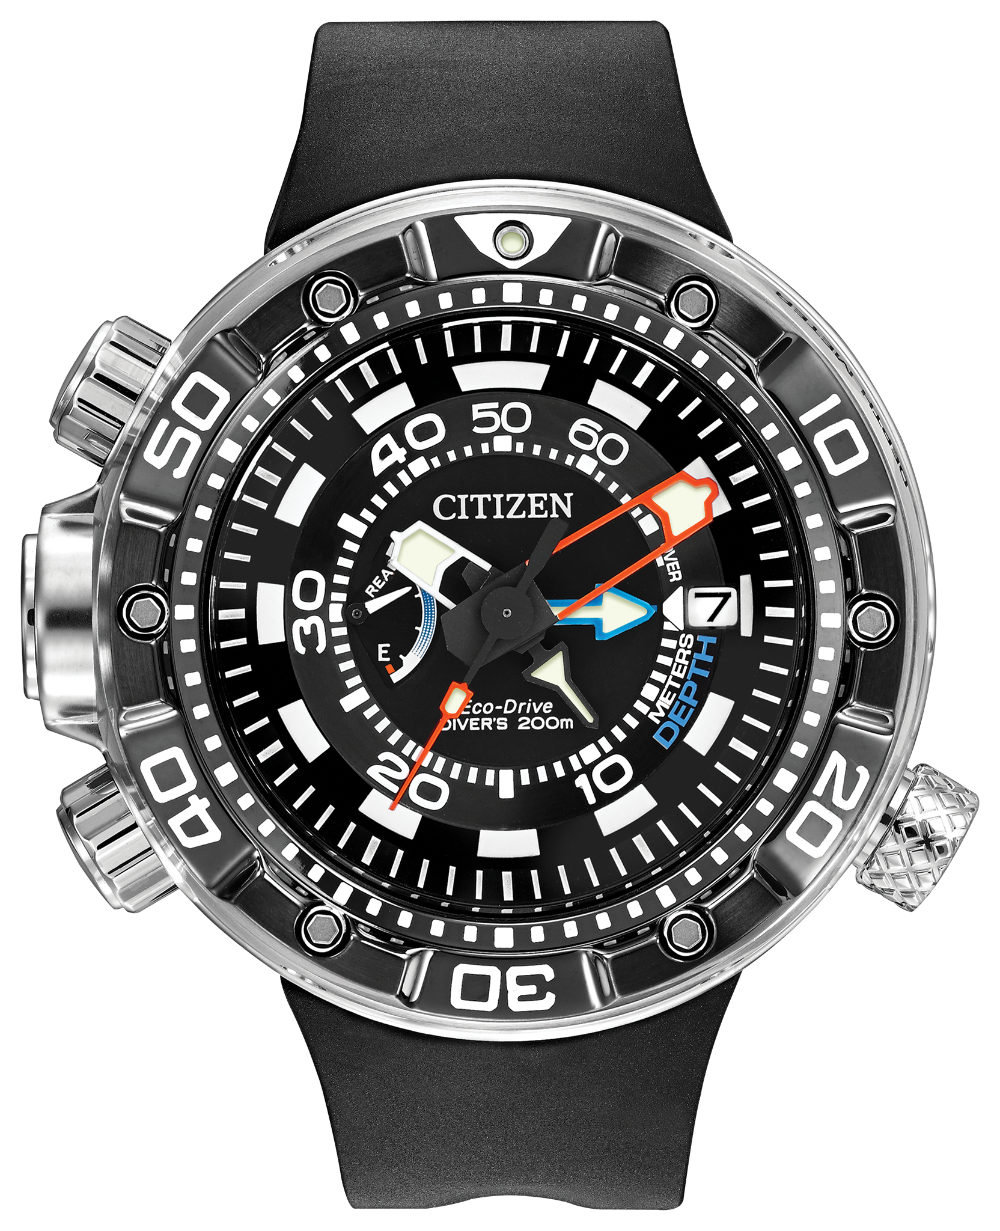 Citizen Promaster Aqualand 200m Depth meter BN2029-01E